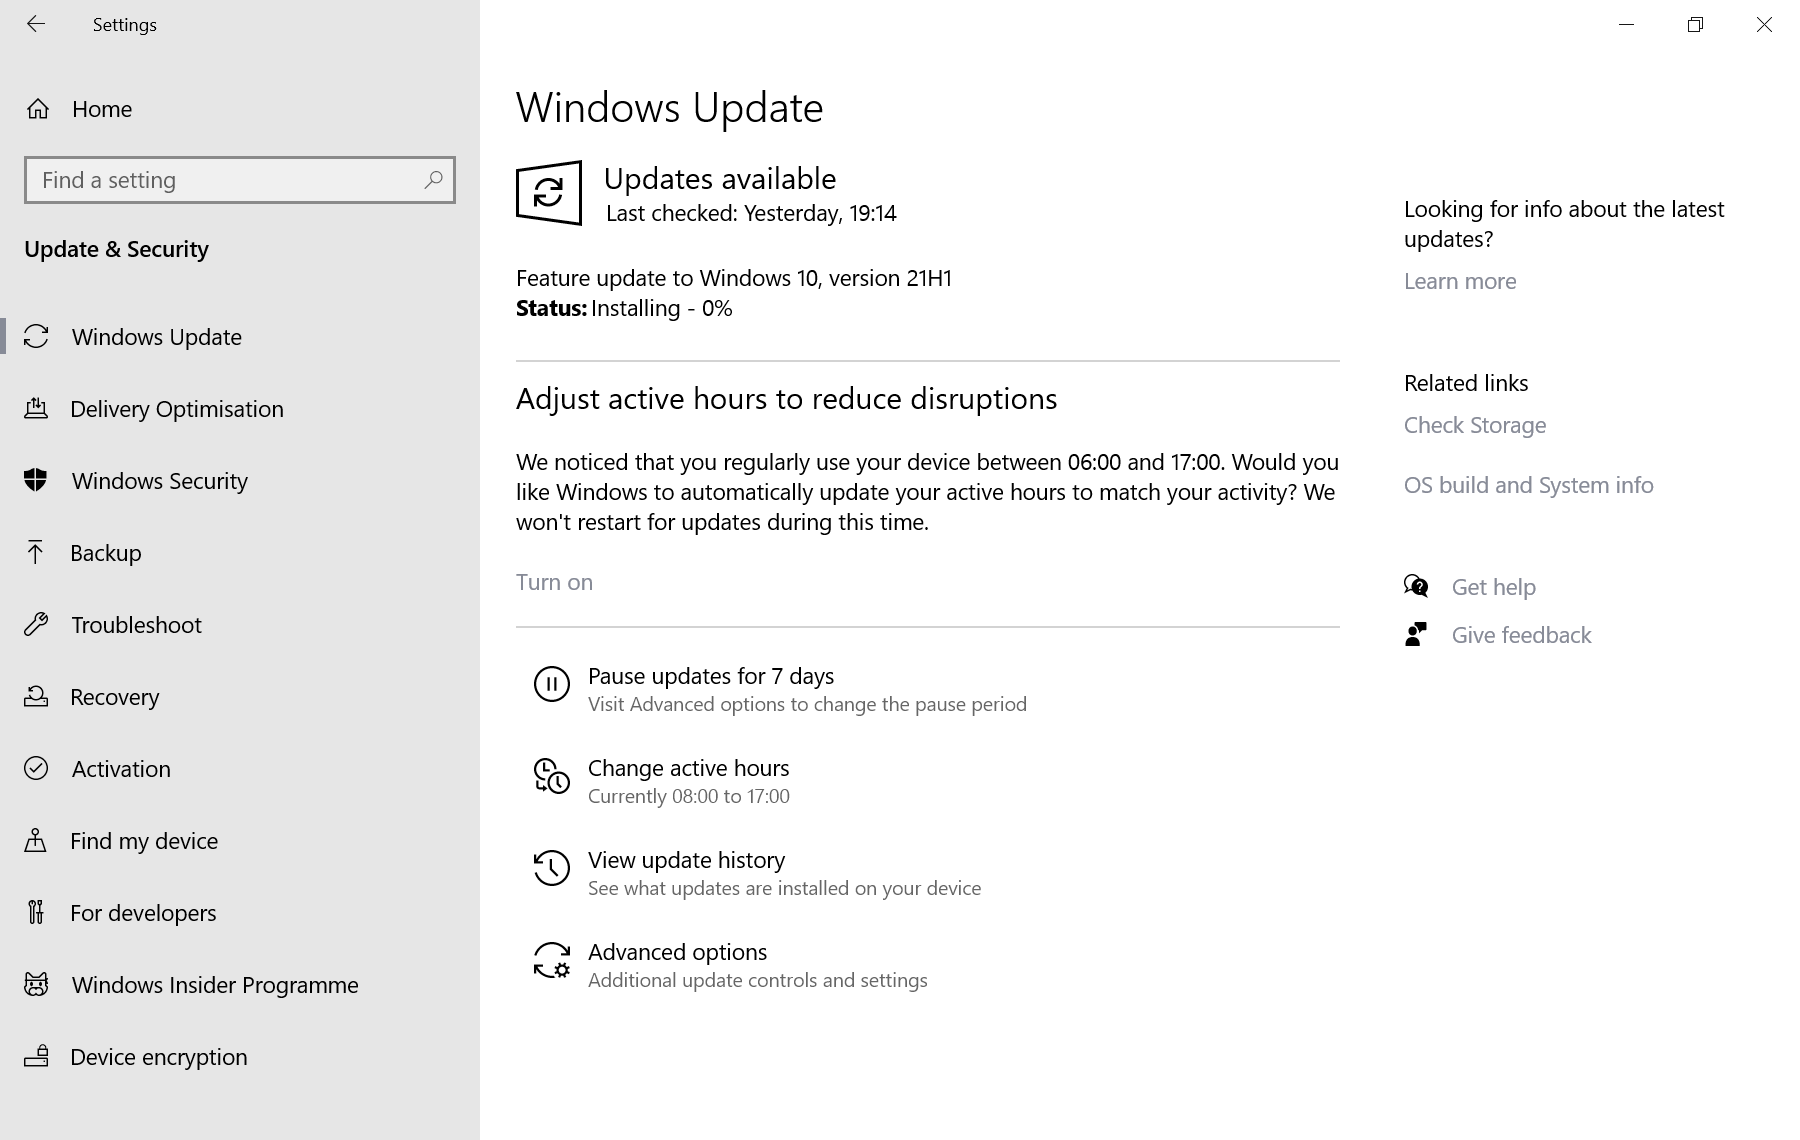 Windows 10 version 21H1 has been released windows-10-version-21h1-installation.png